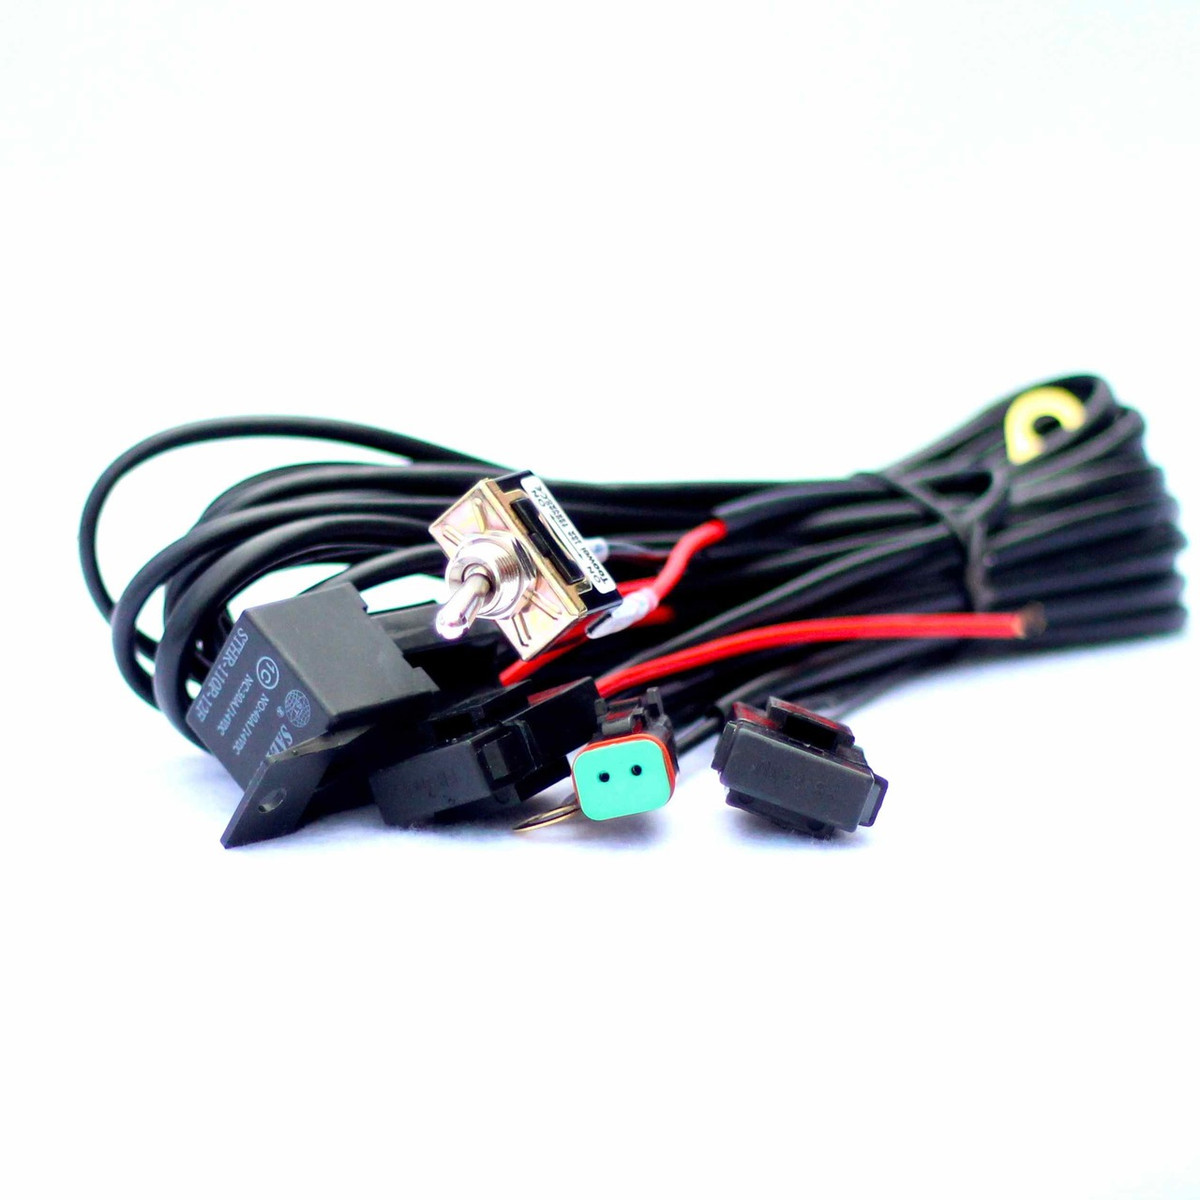 WH20_1__30625.1396140977?c=2 duck boat wiring harness for southern lite led boat lite boat wiring harness at suagrazia.org